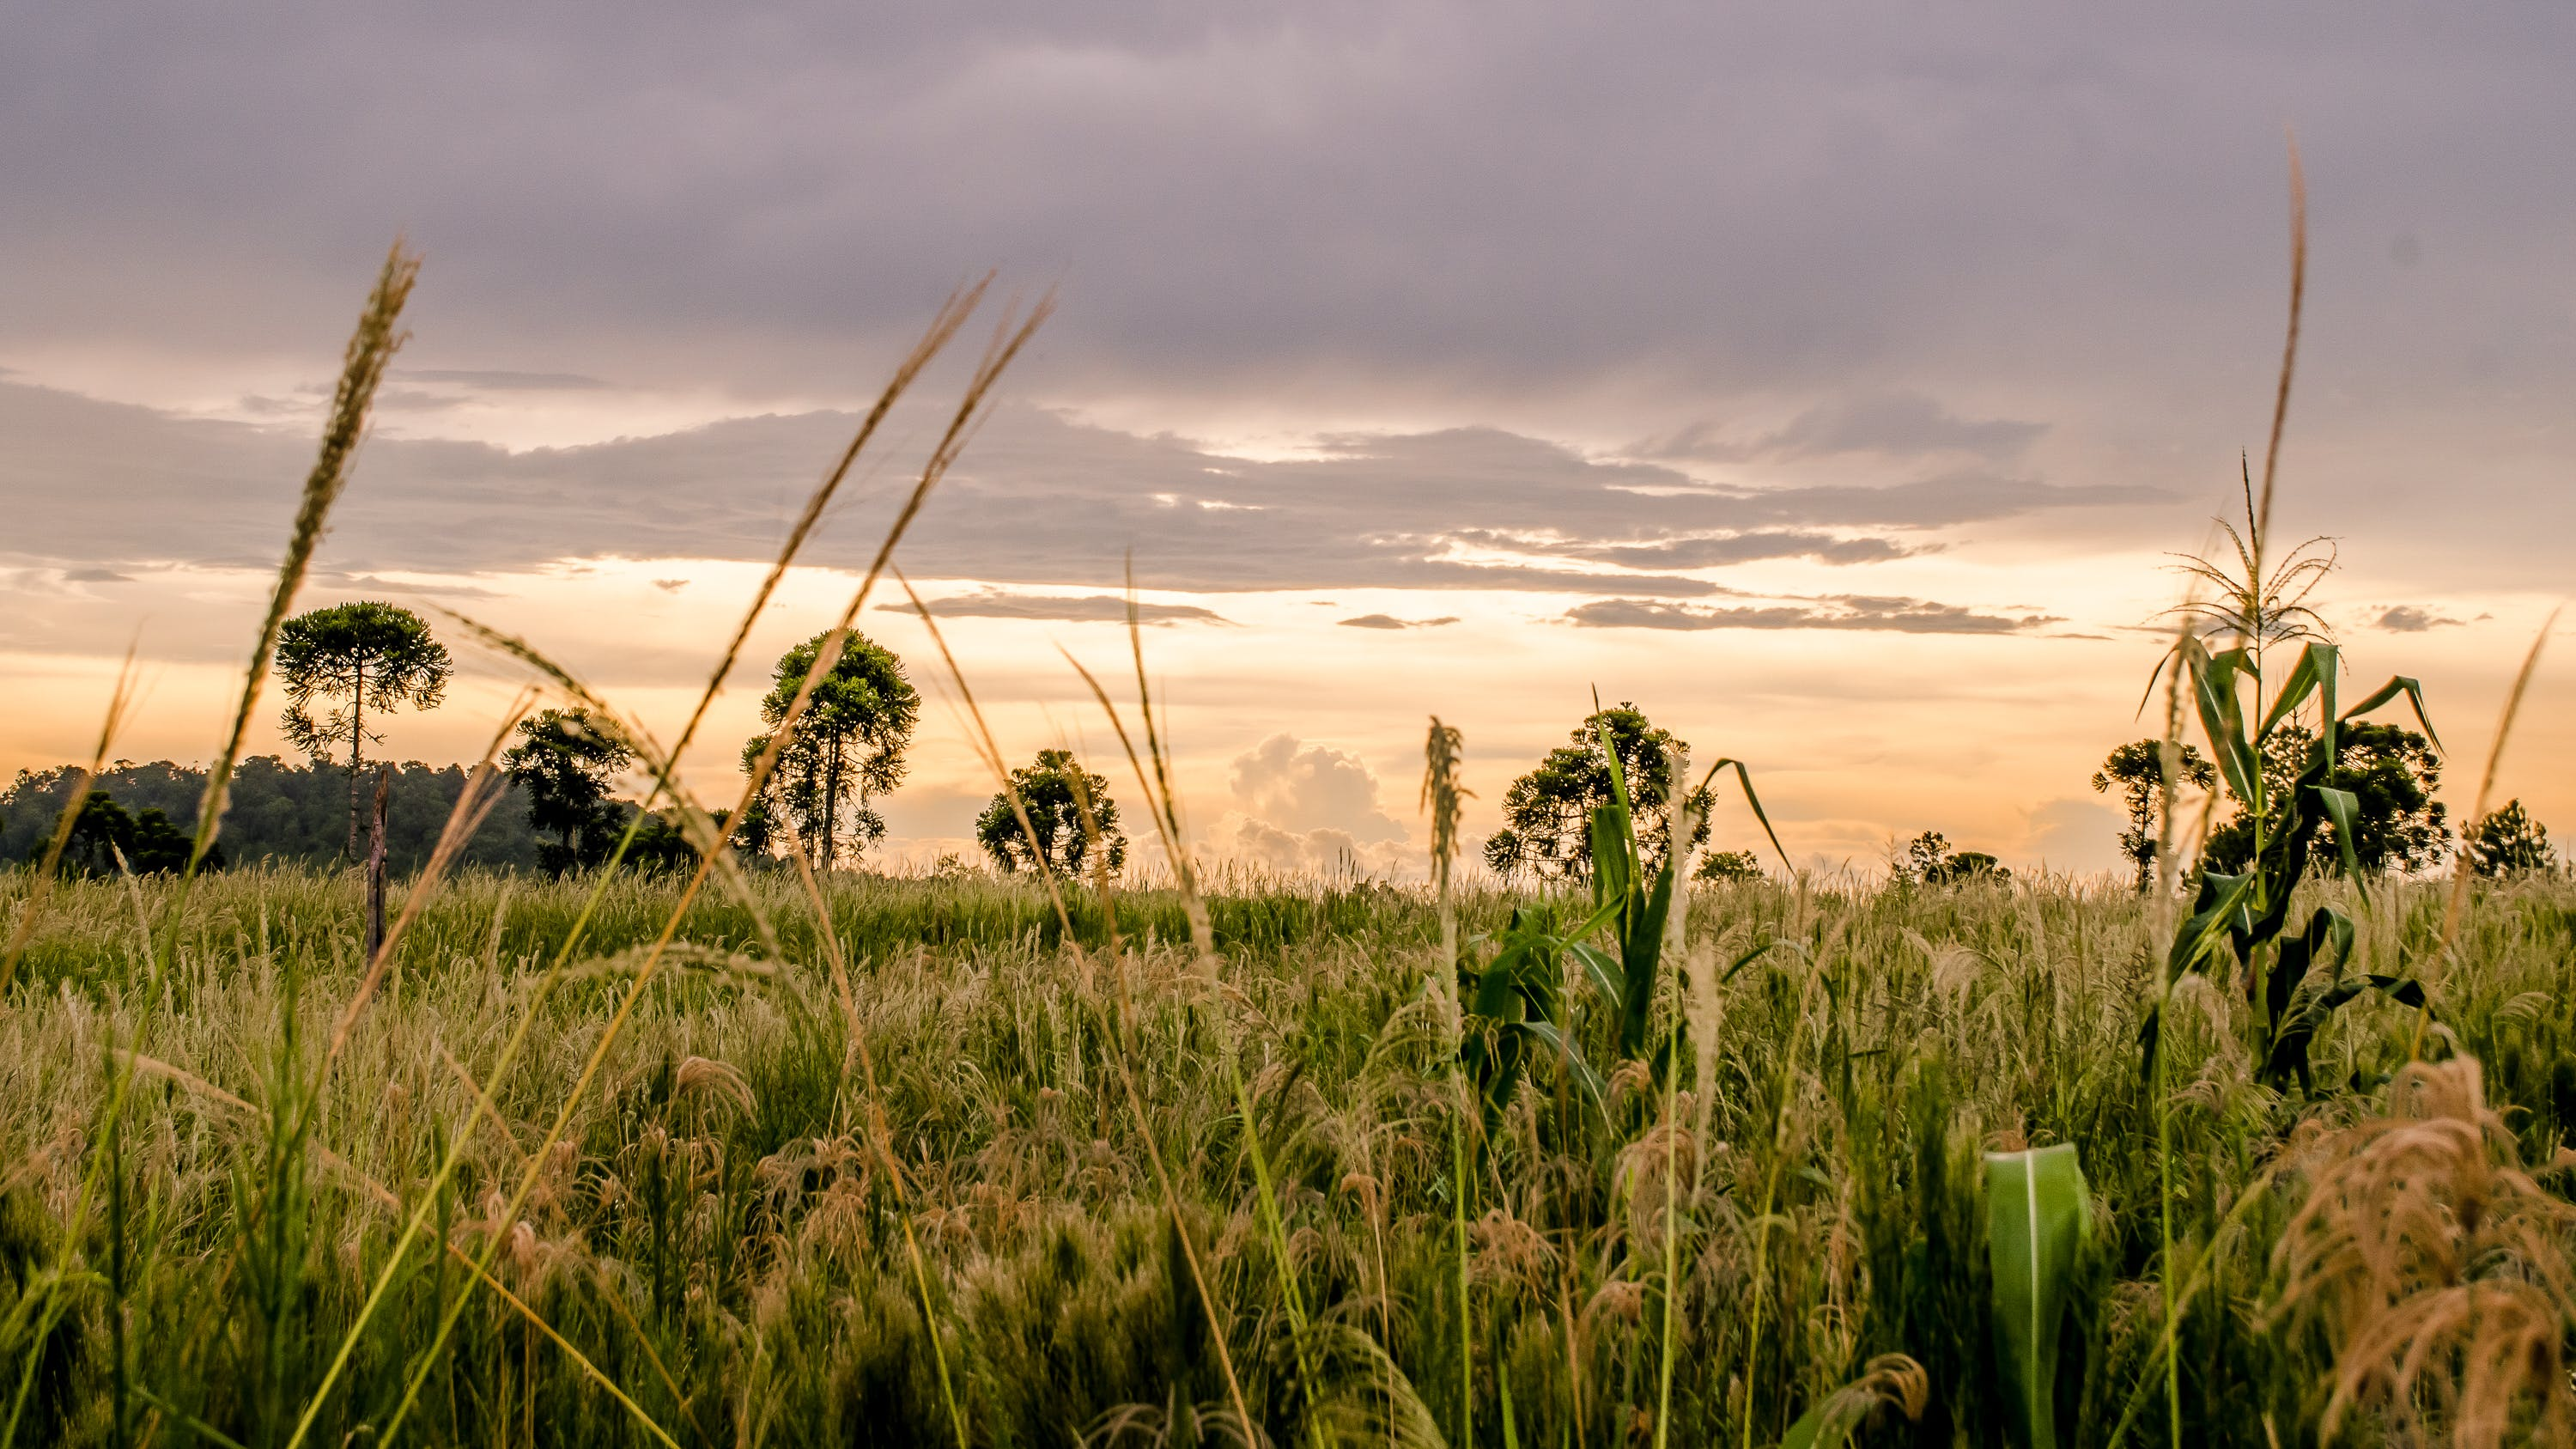 Wheat Fields during Golden Hour